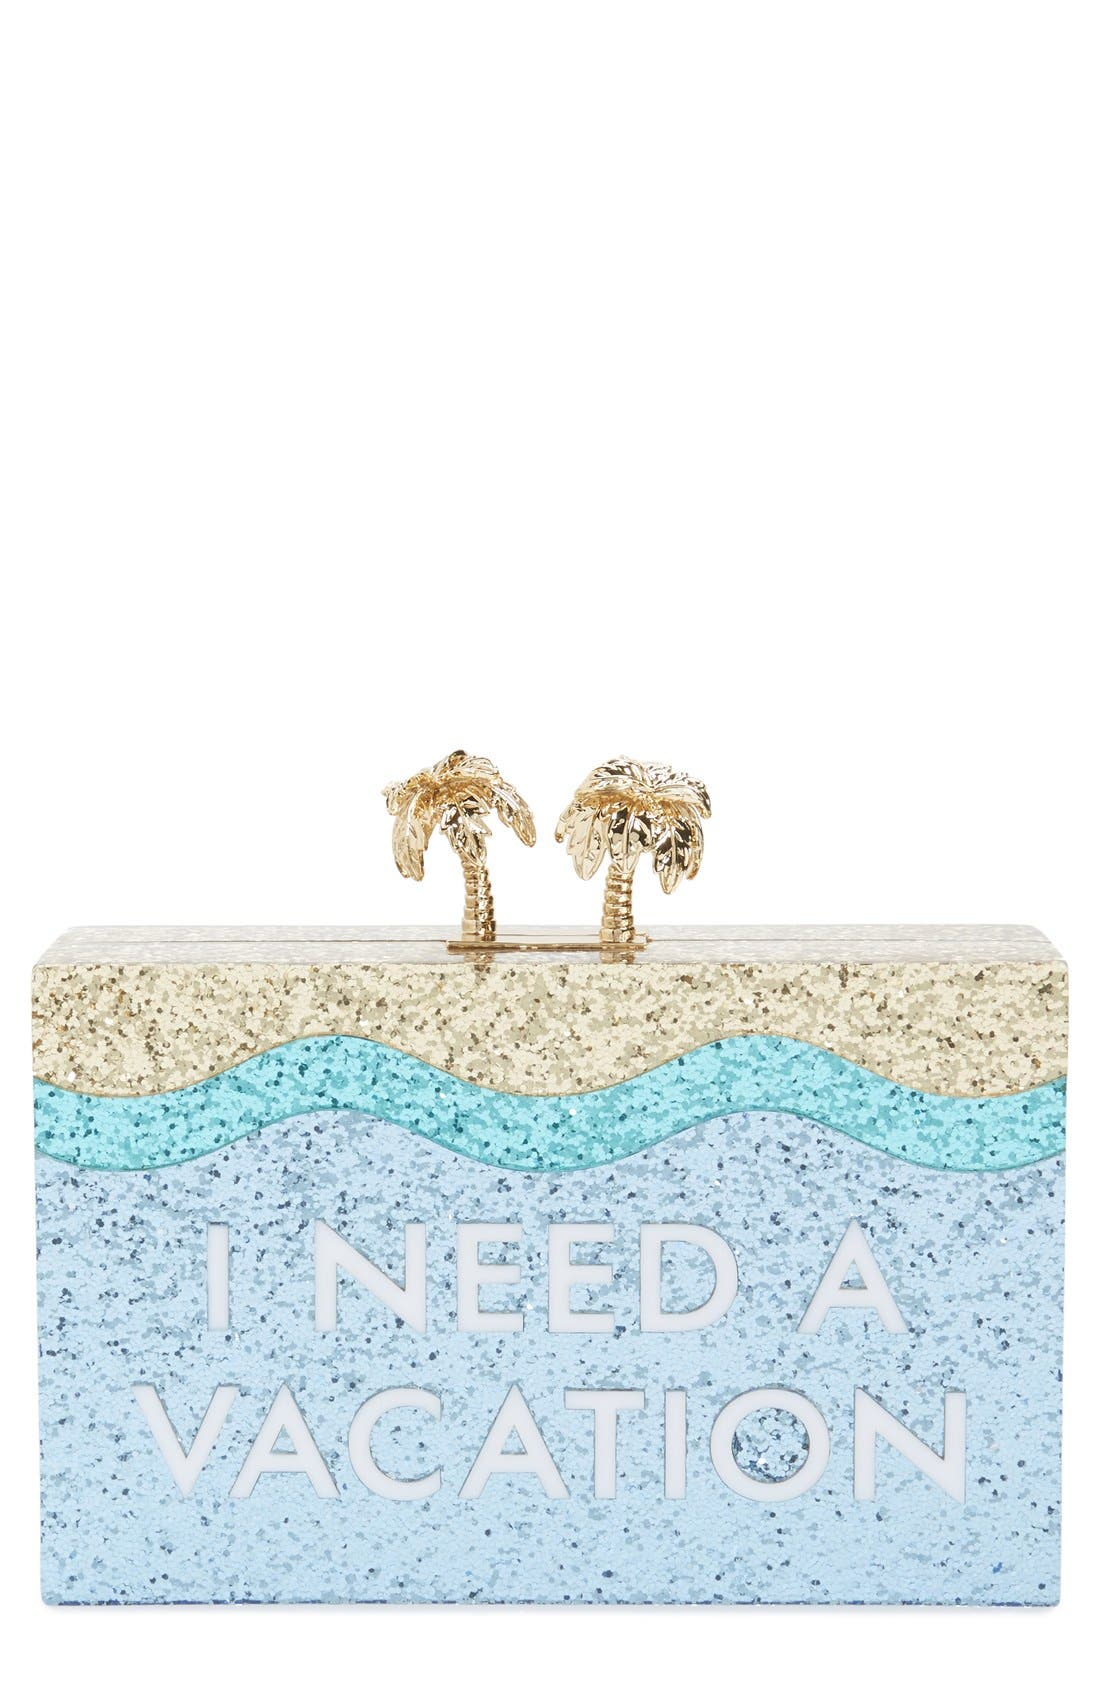 Main Image - kate spade new york 'i need a vacation' box clutch